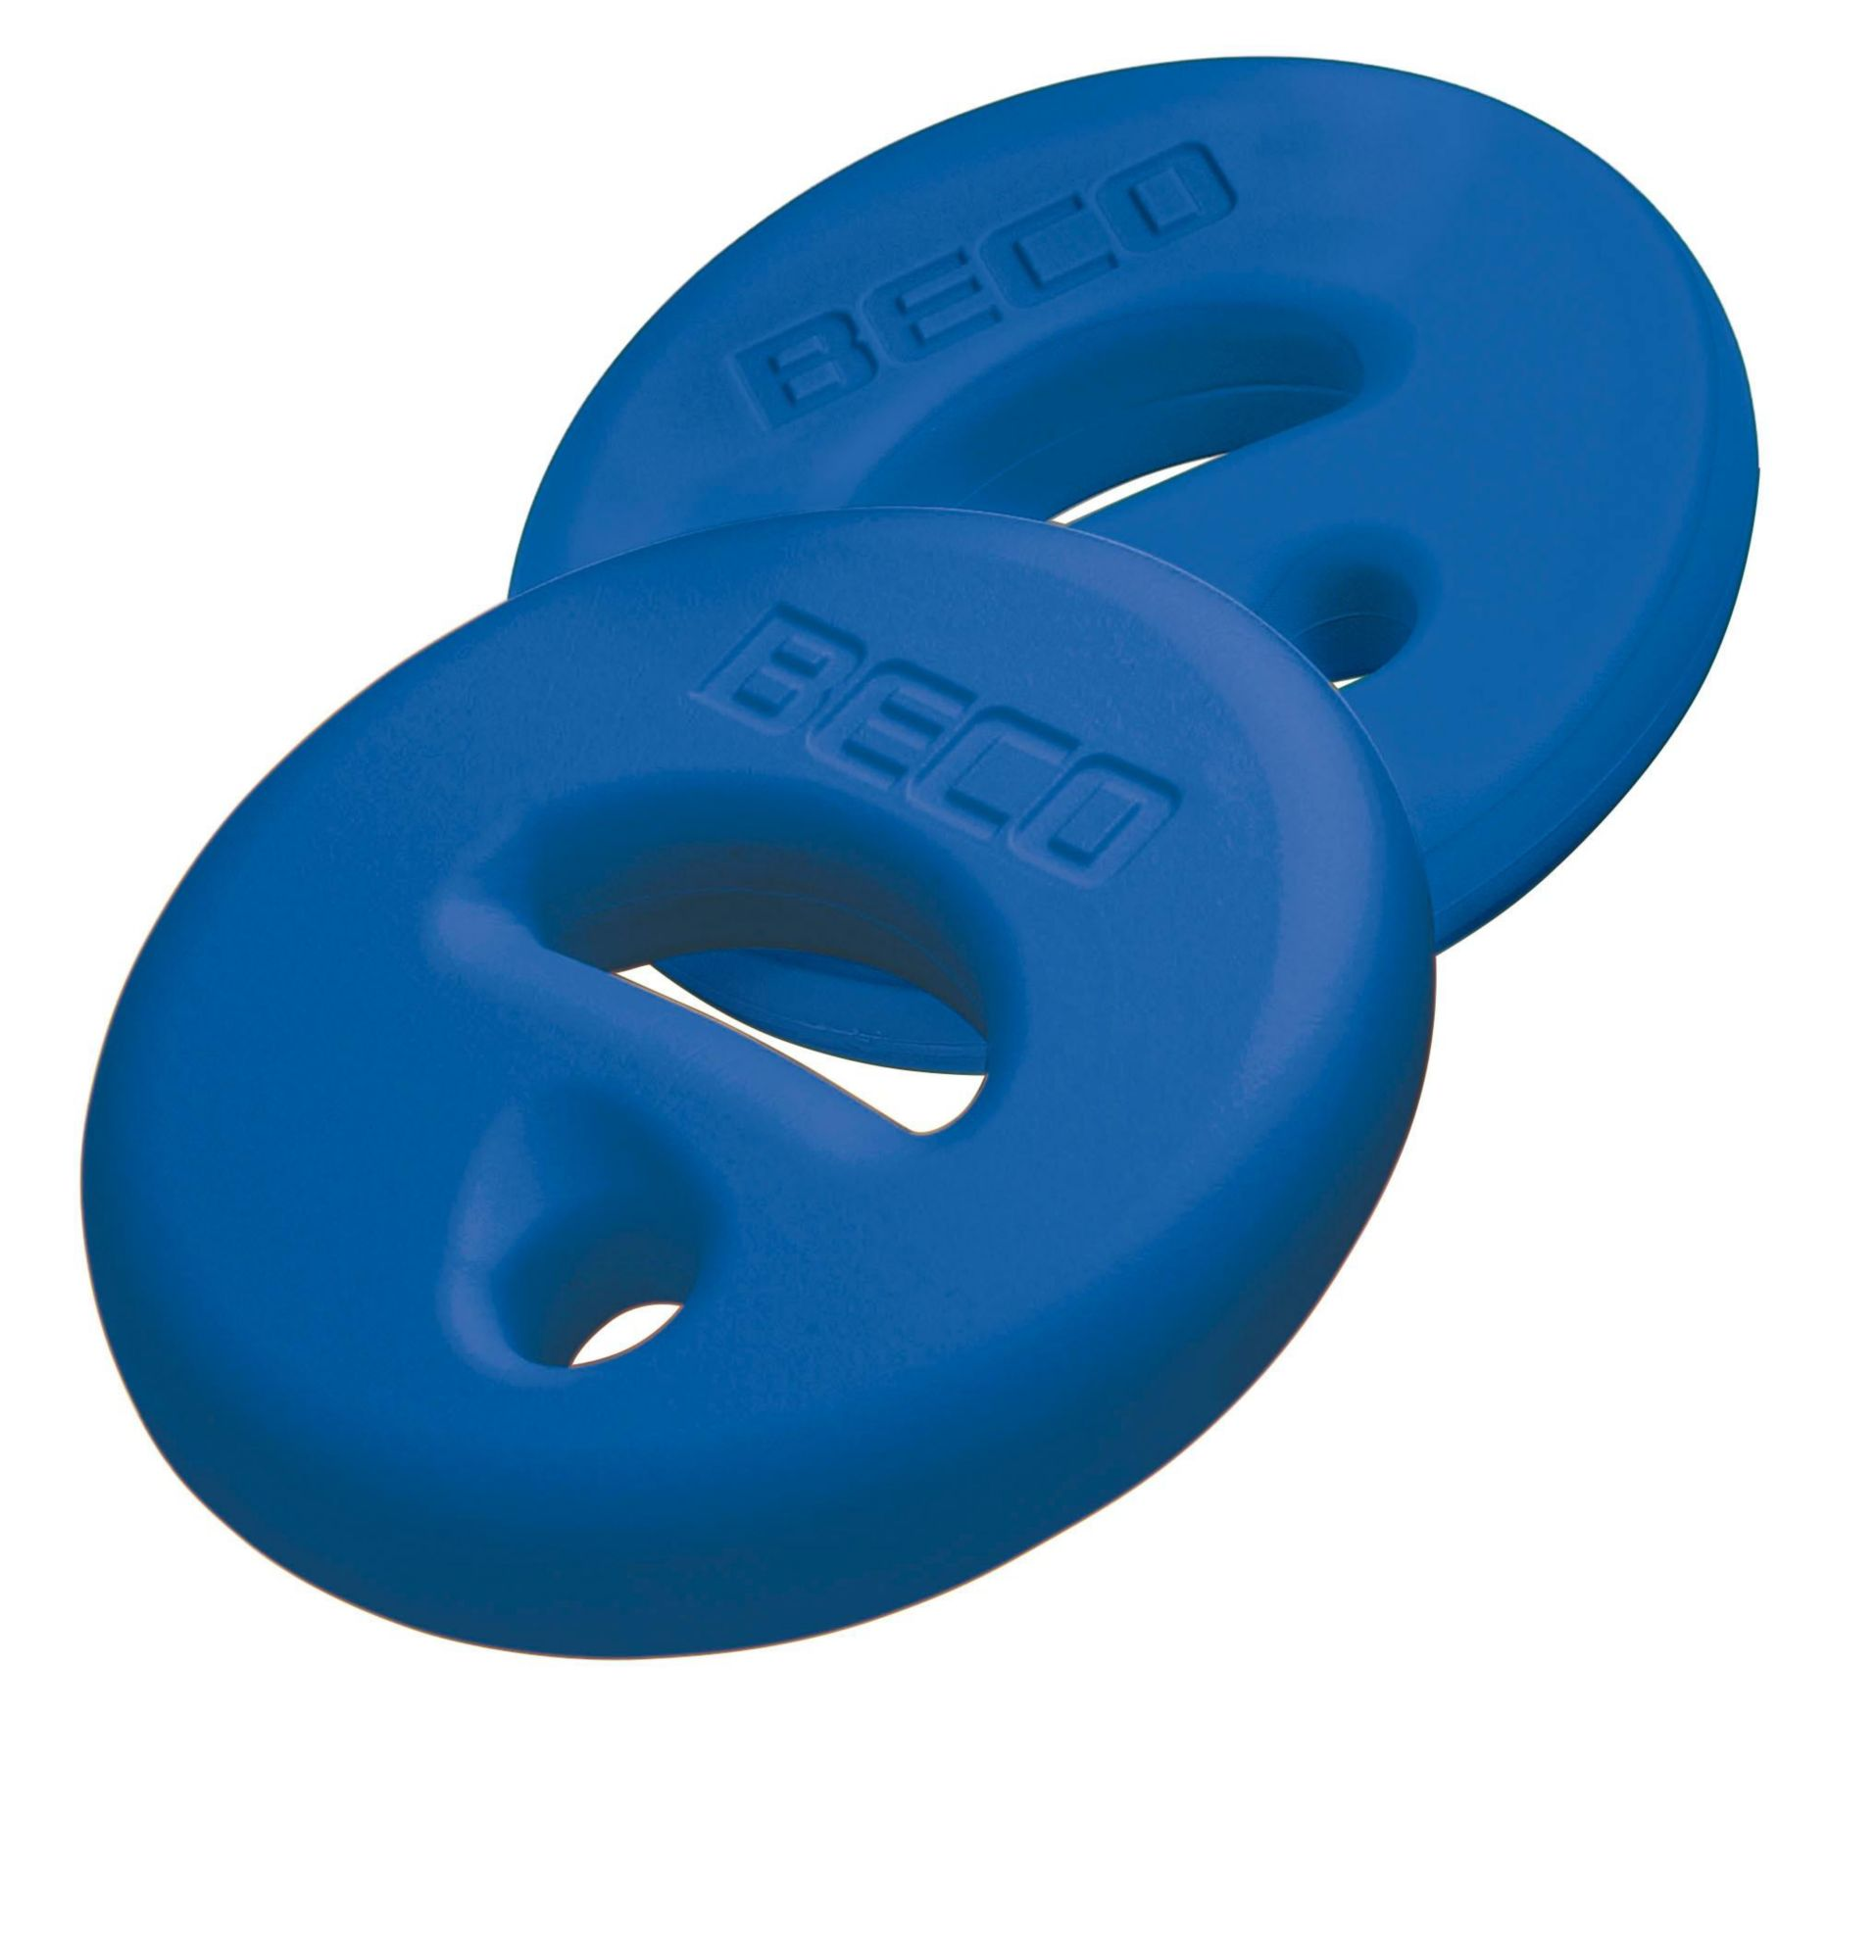 BECO BEERMANN Beco Beermann Aqua Disc